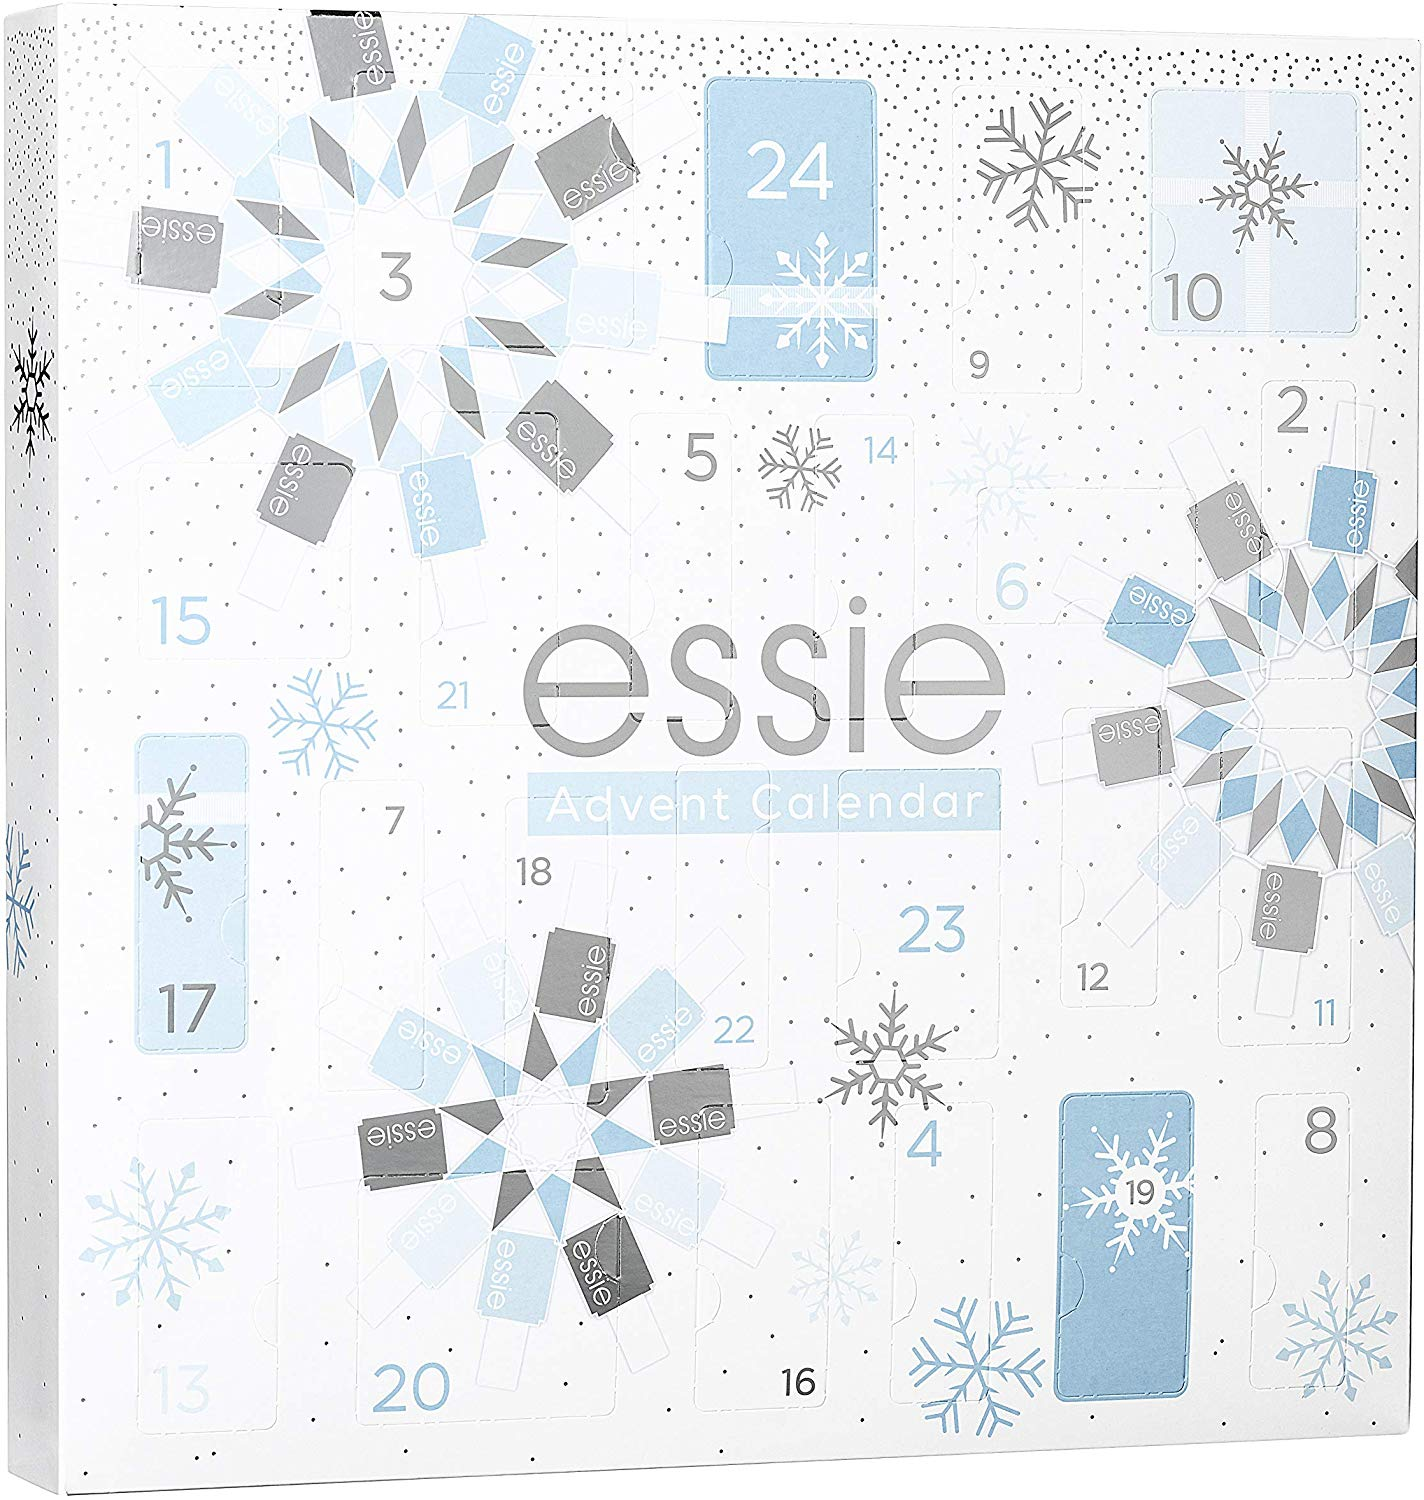 Essie Christmas Nail Polish Advent Calendar 2019 Contents Reveal